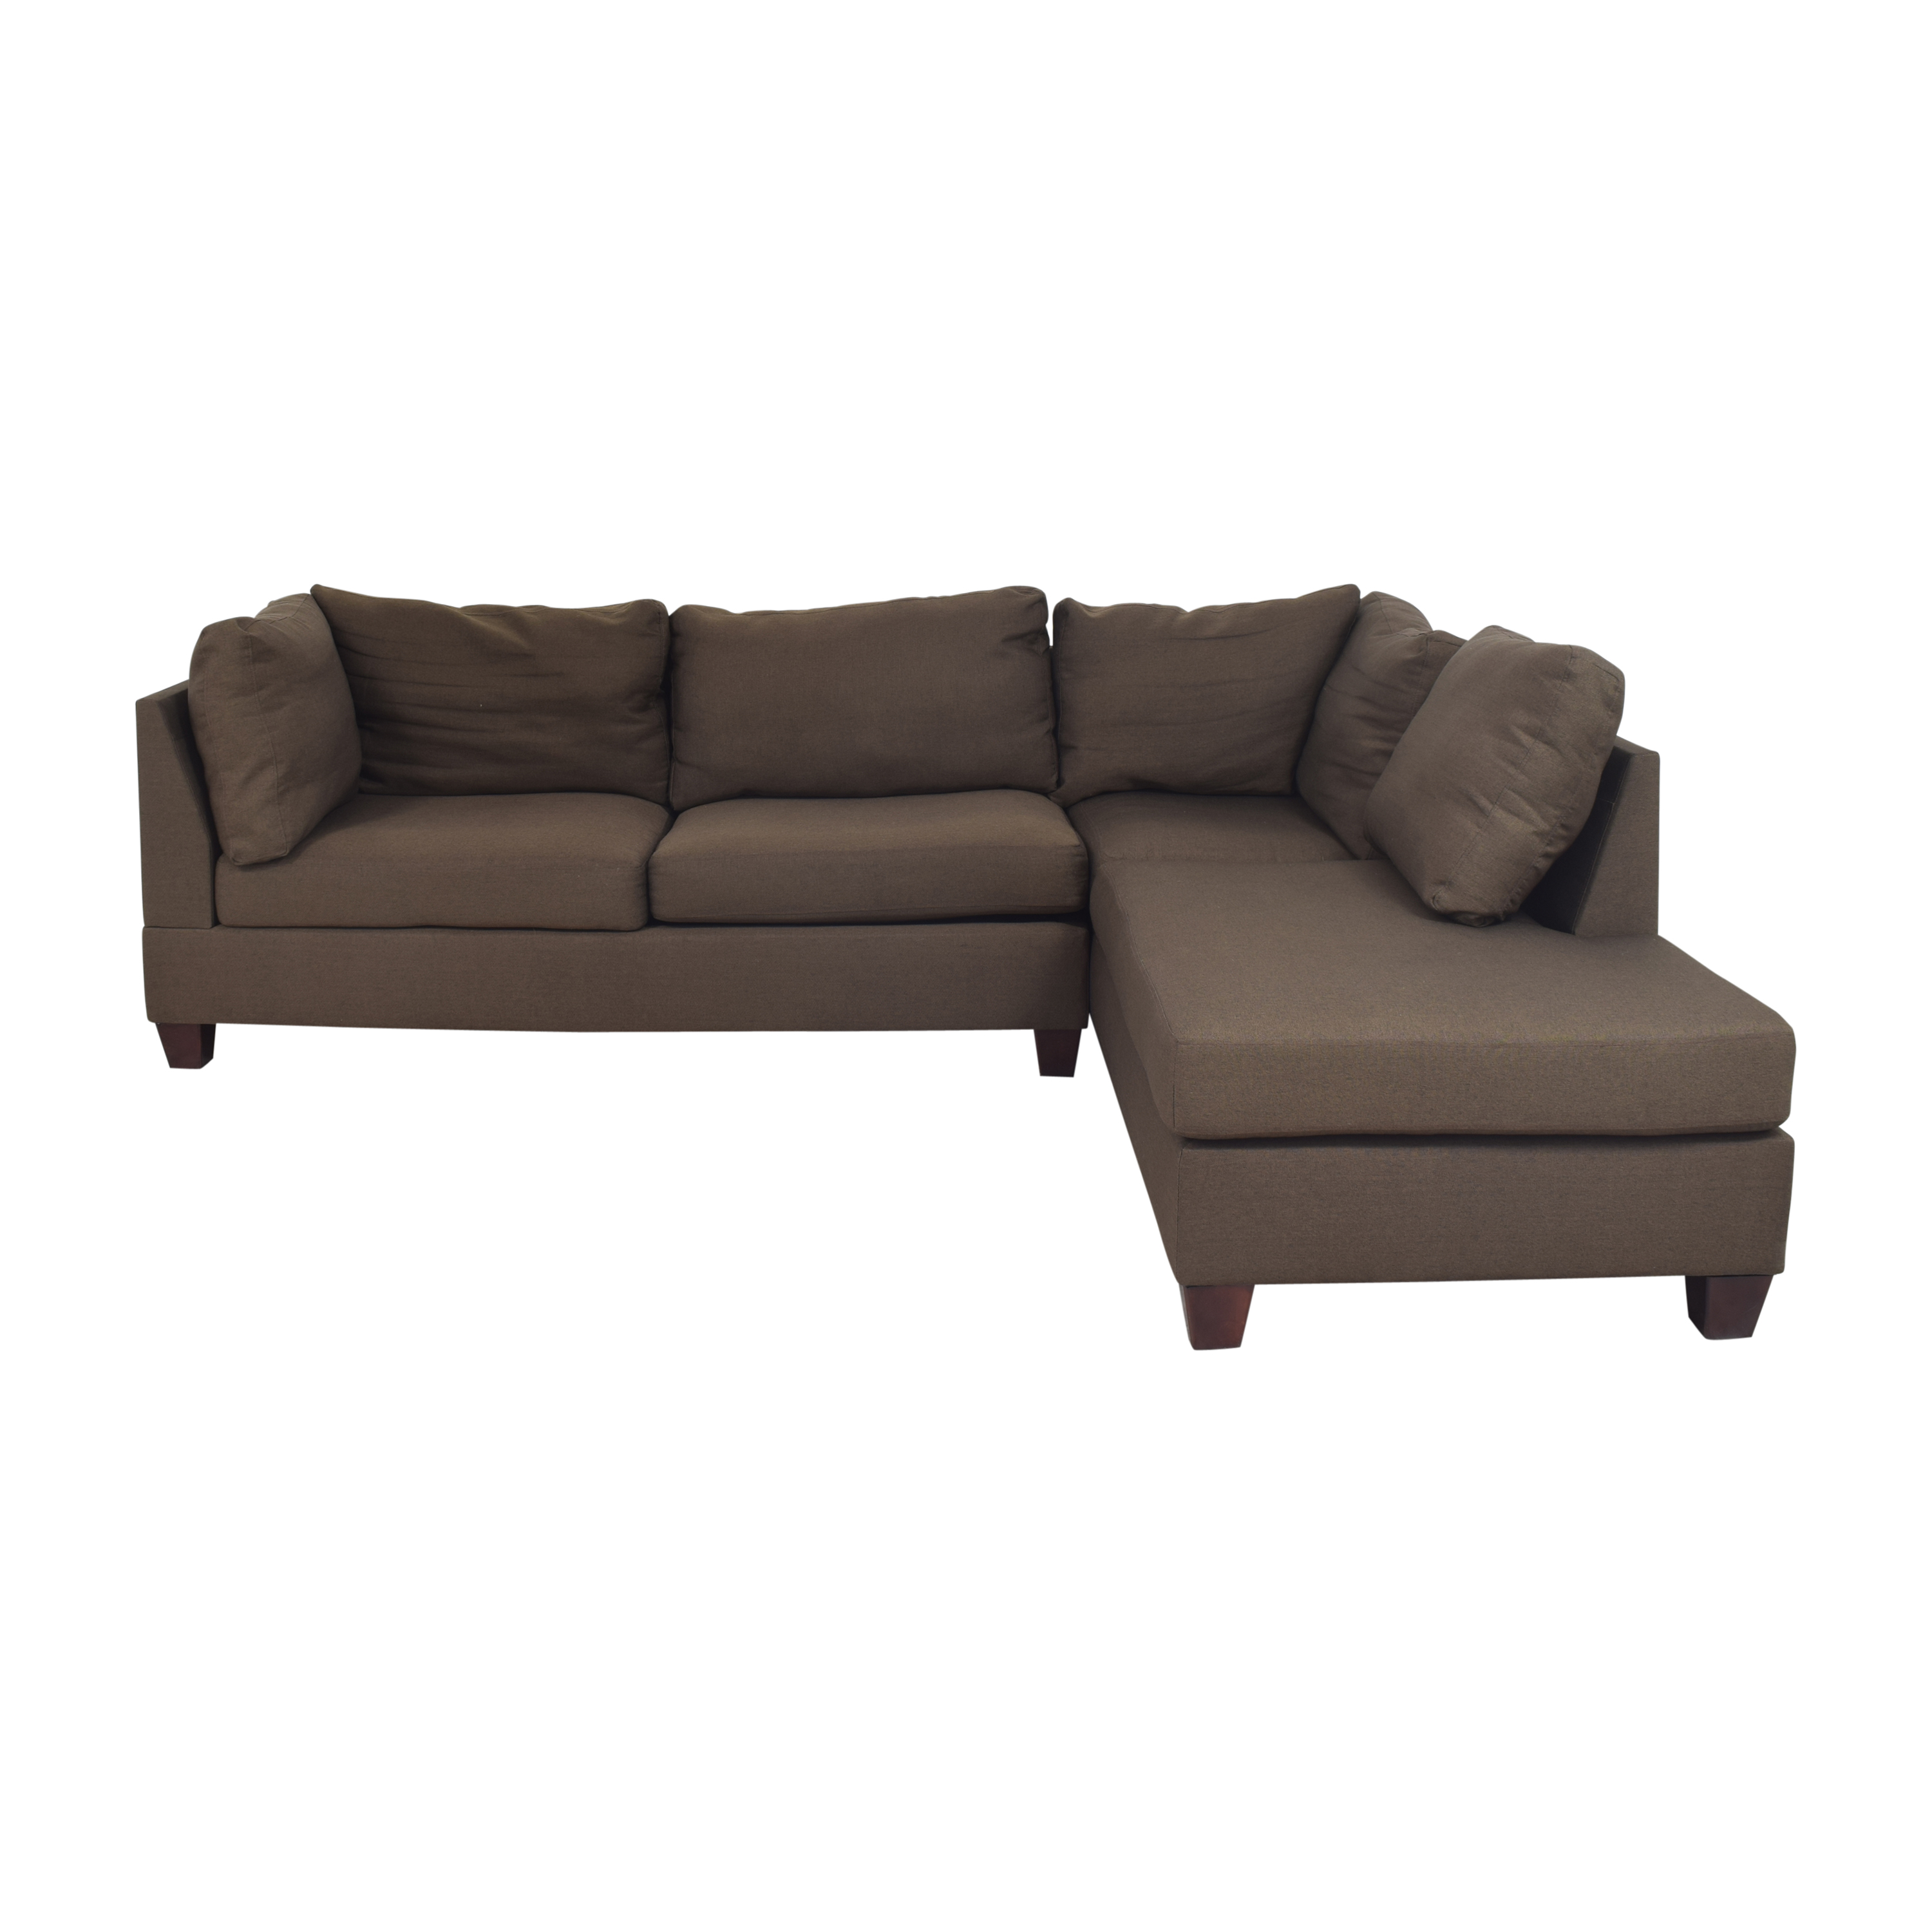 buy Wayfair Jacober Wide Reversible Chaise Sectional with Ottoman Wayfair